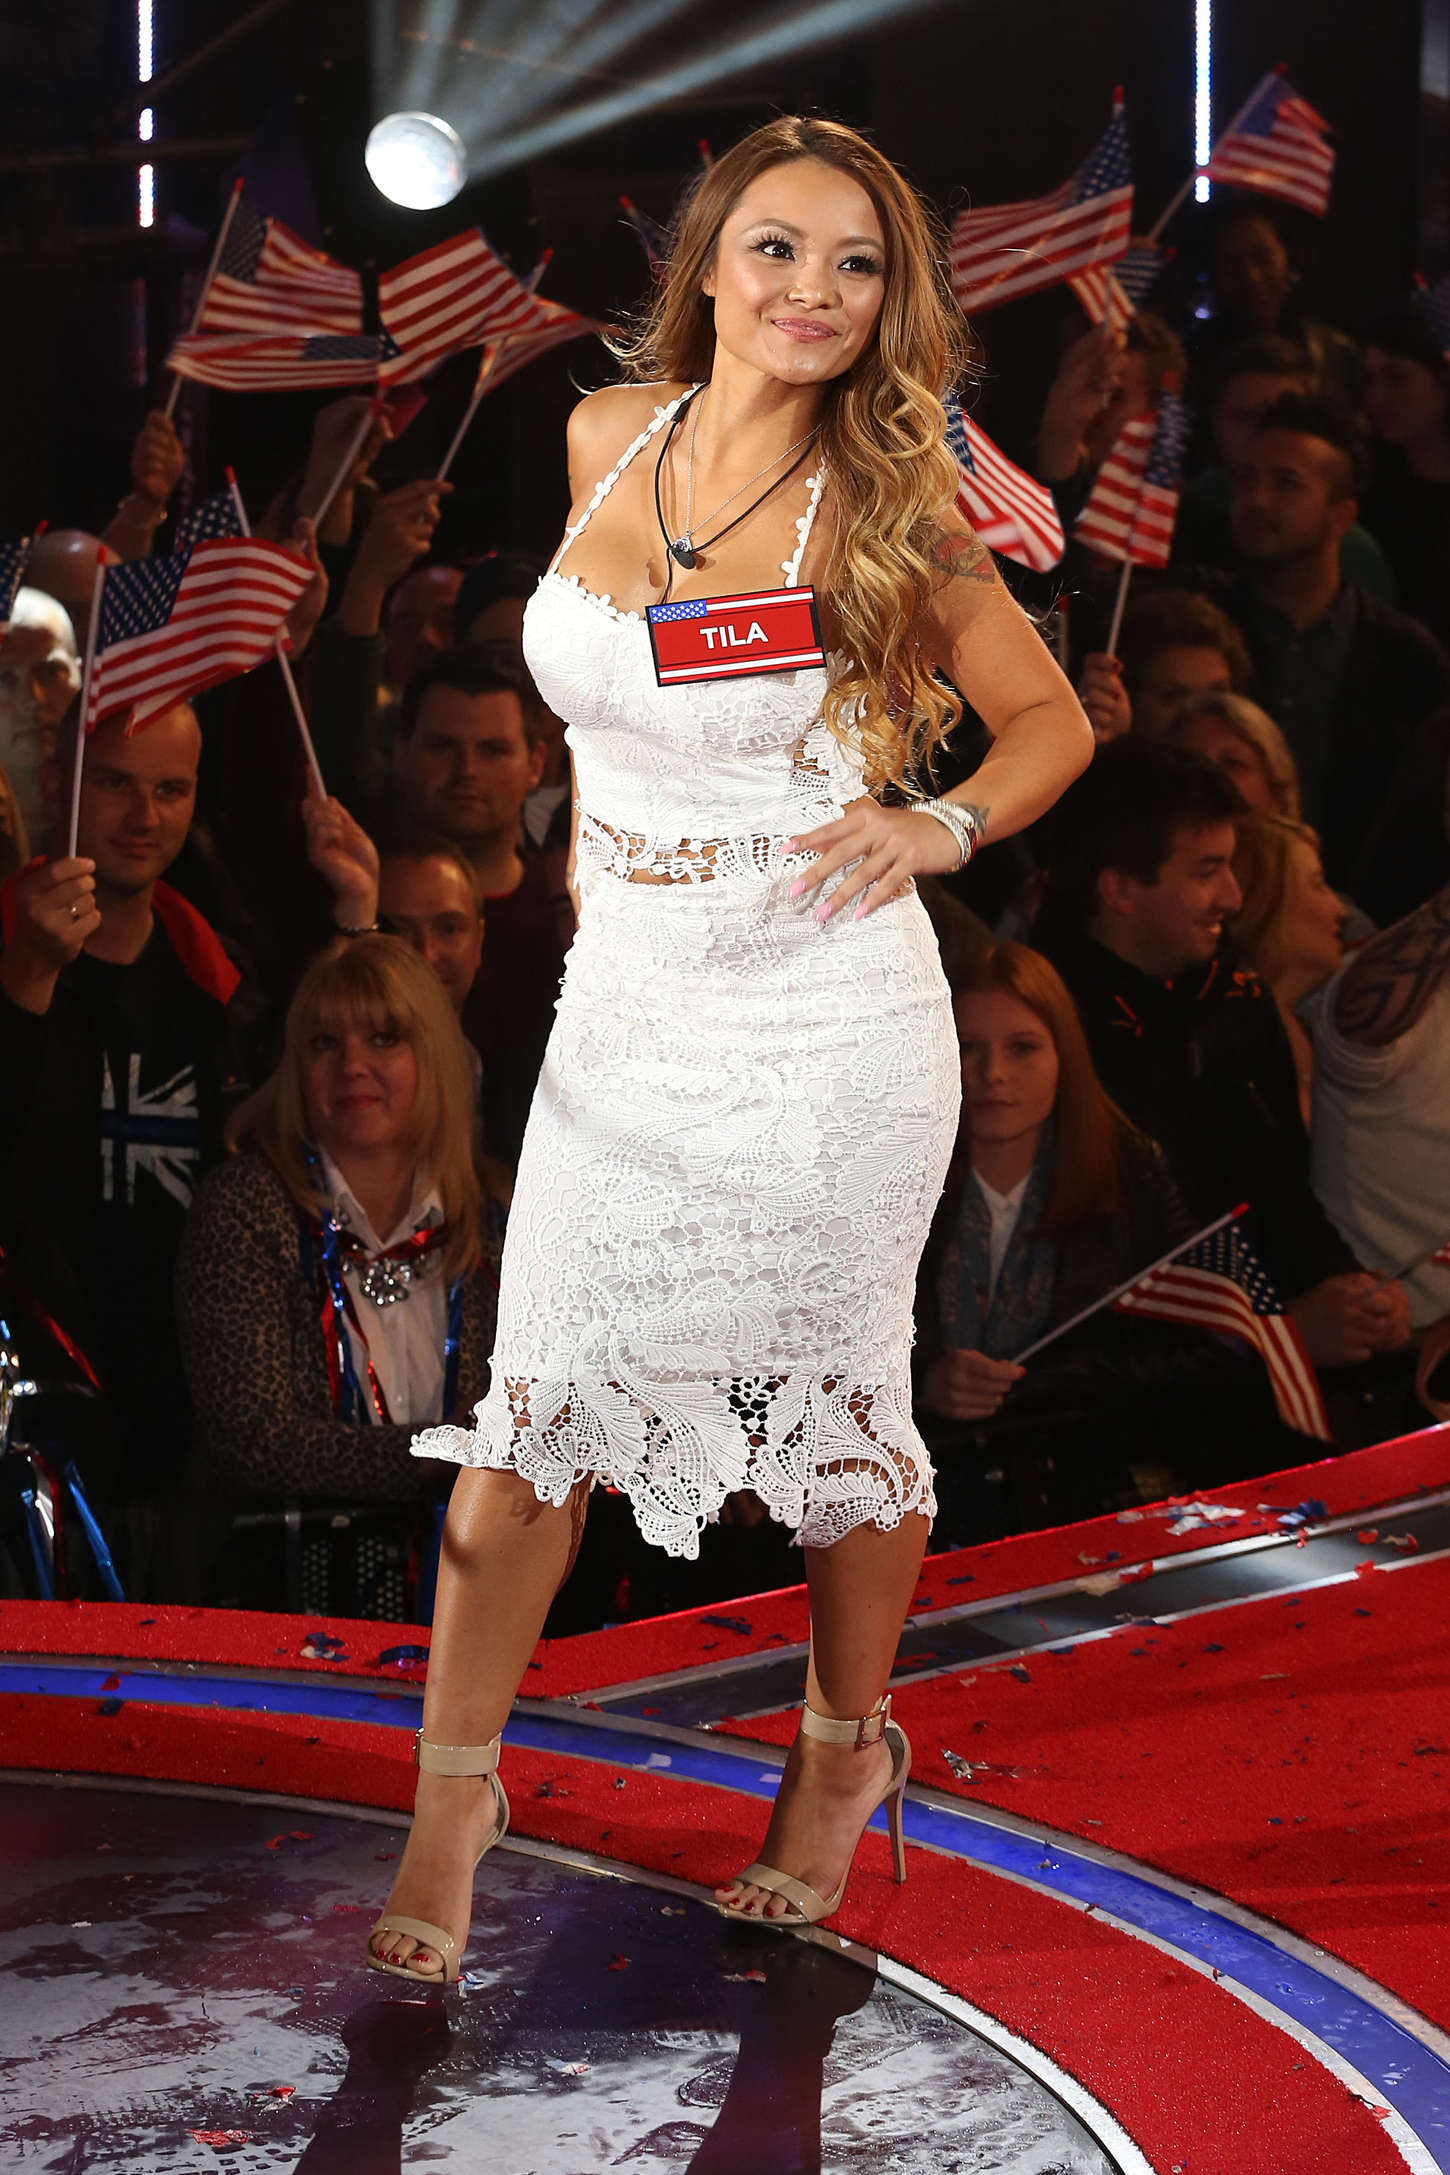 Video - Celebrity Big Brother UK vs USA - Official Opening ...